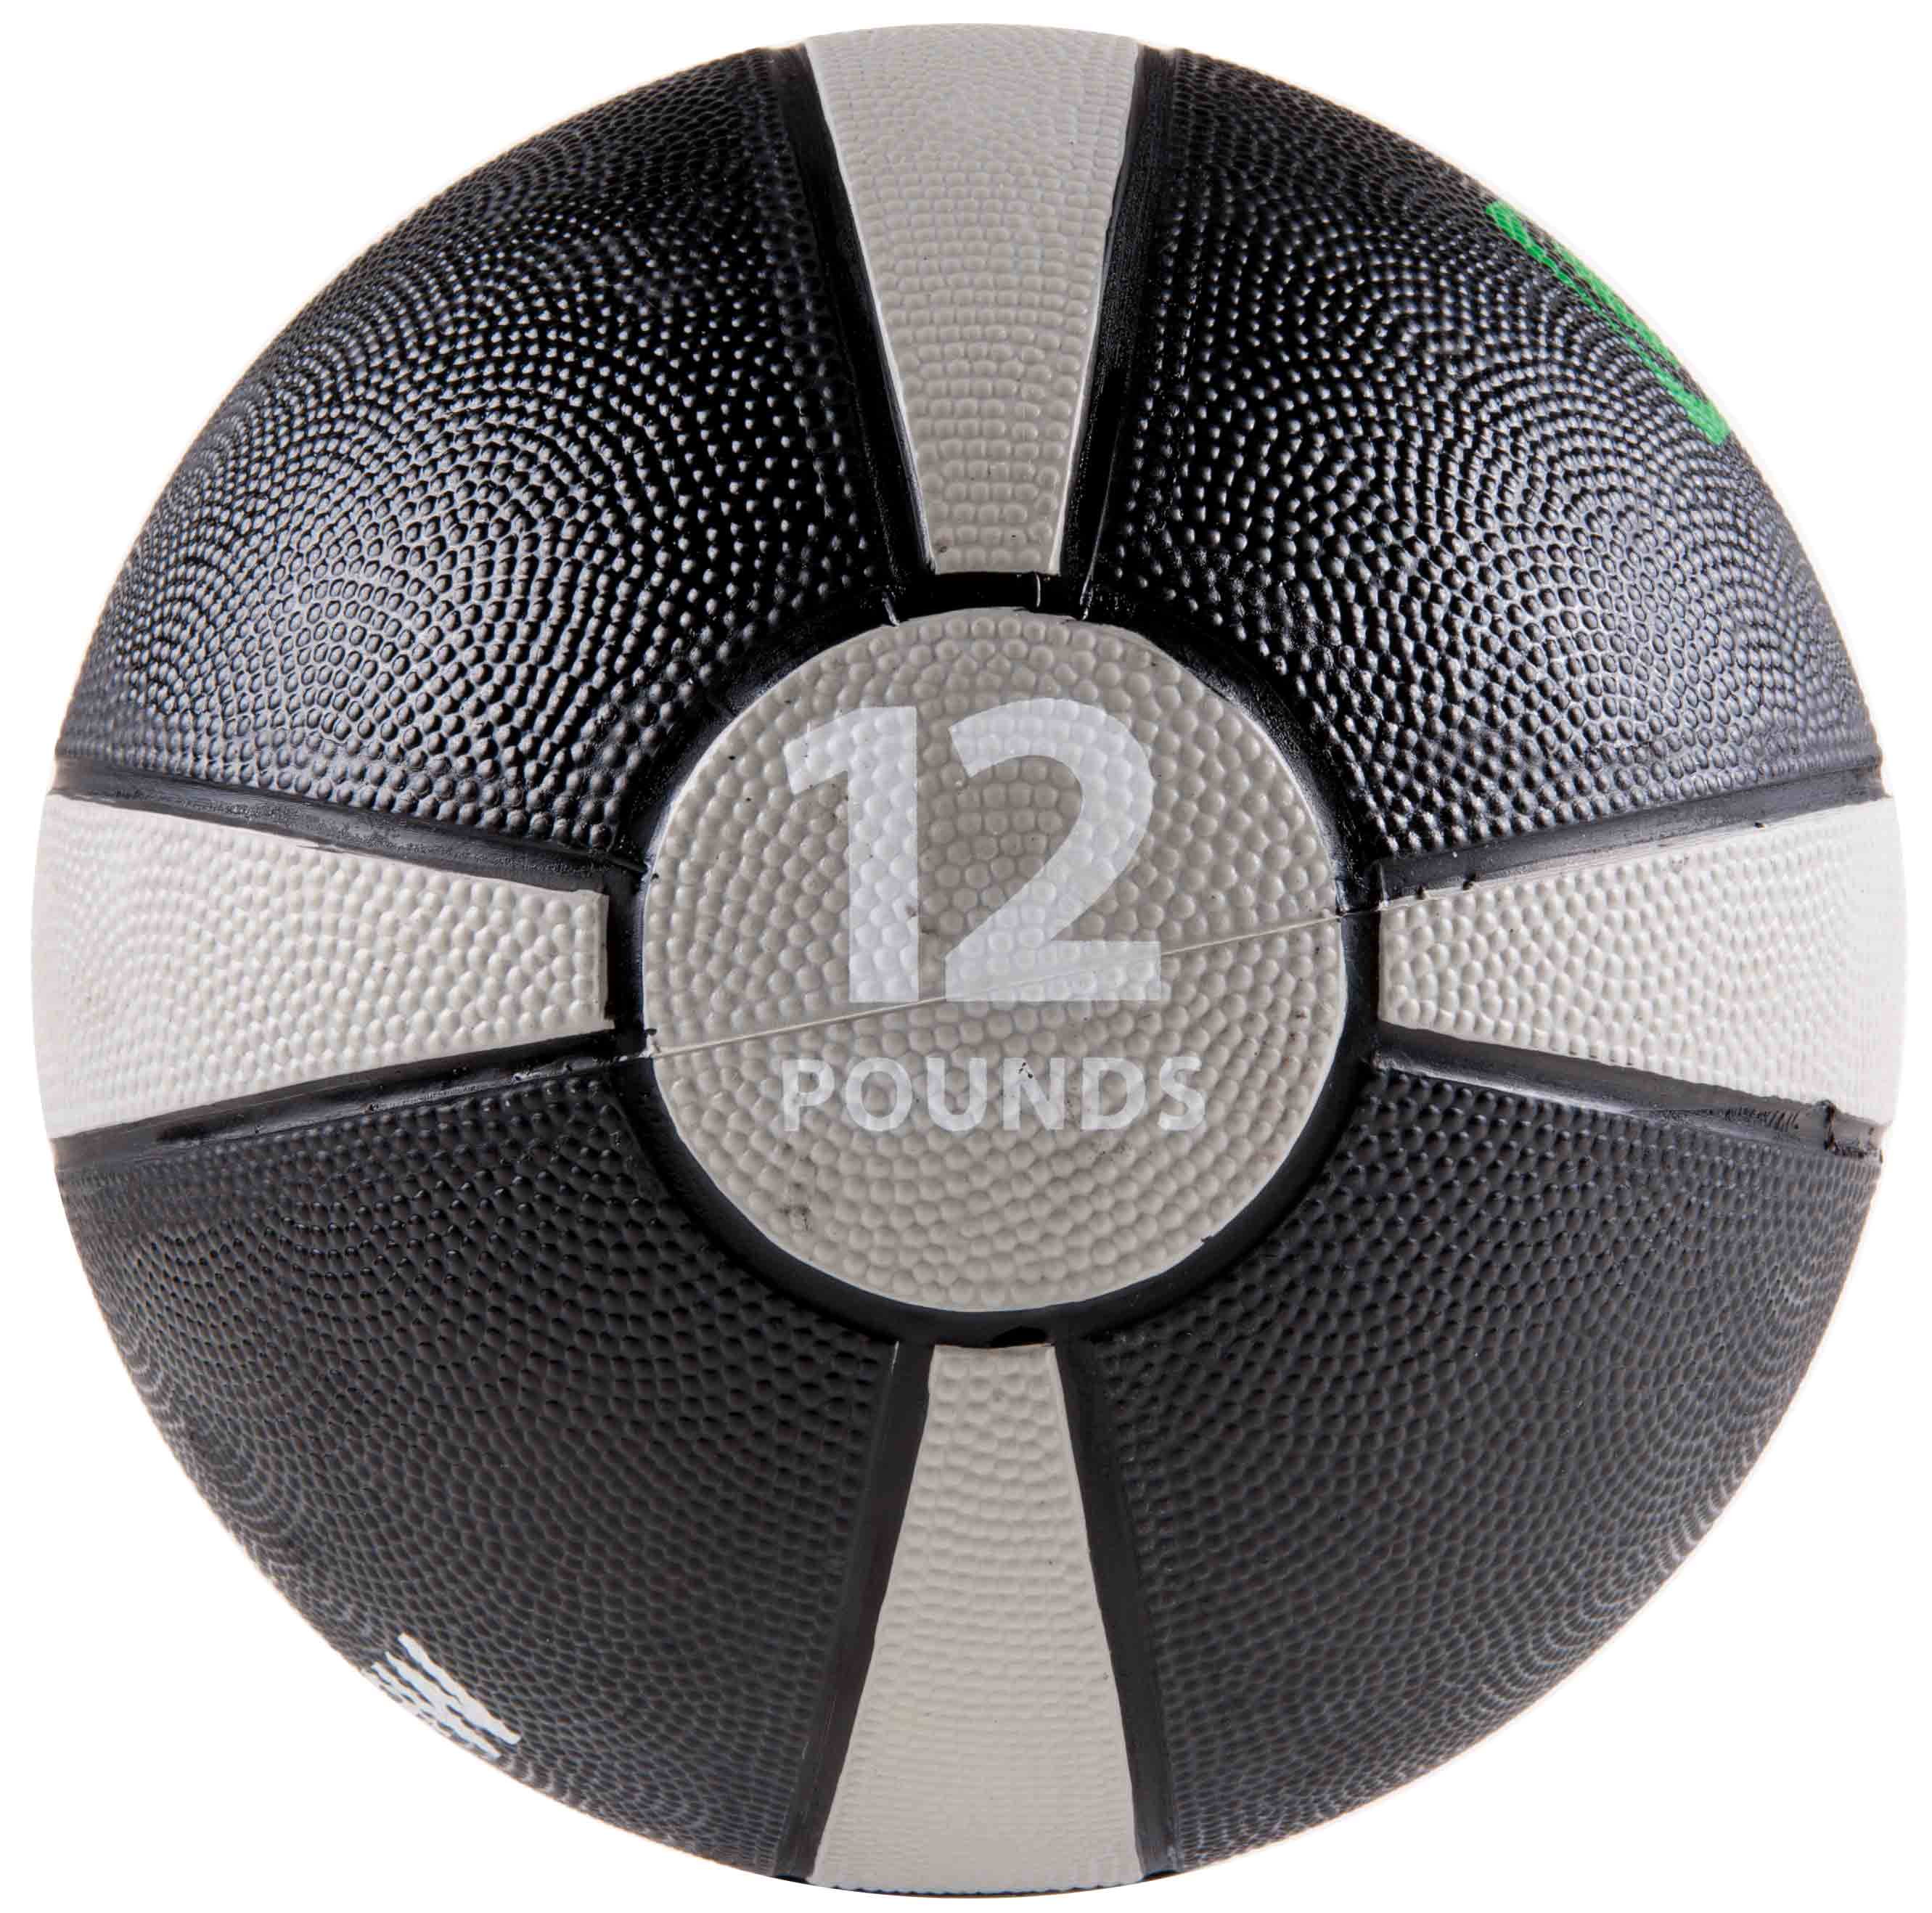 Rubber Medicine Ball with Training Manual - 12lb Grey/Black